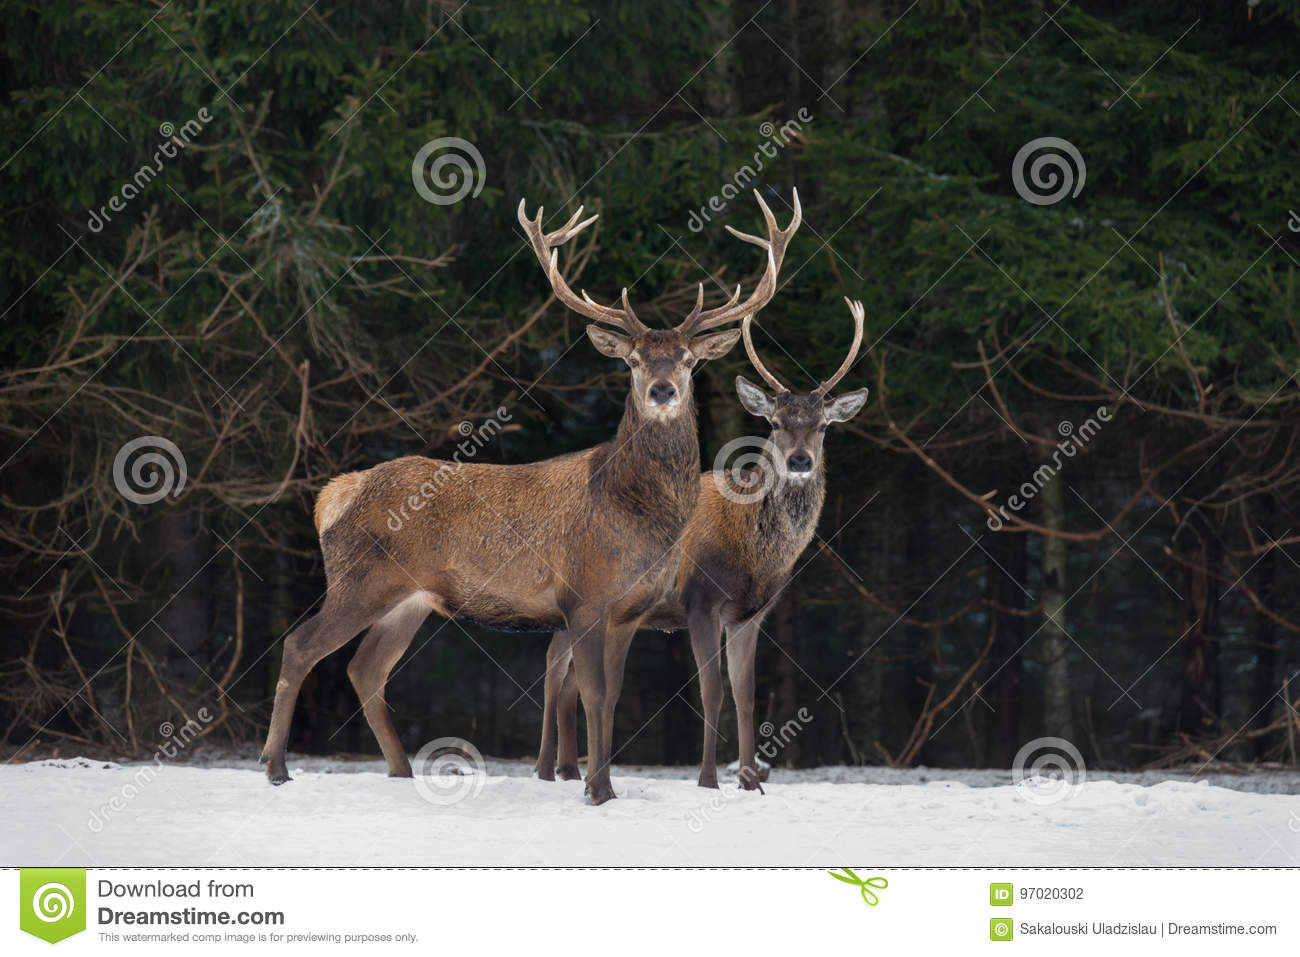 Father And Son:Two Generations Of Noble Deer Stag. Two Red Deer Cervus Elaphus Stand Next The Winter Forest. Winter Wildlife St